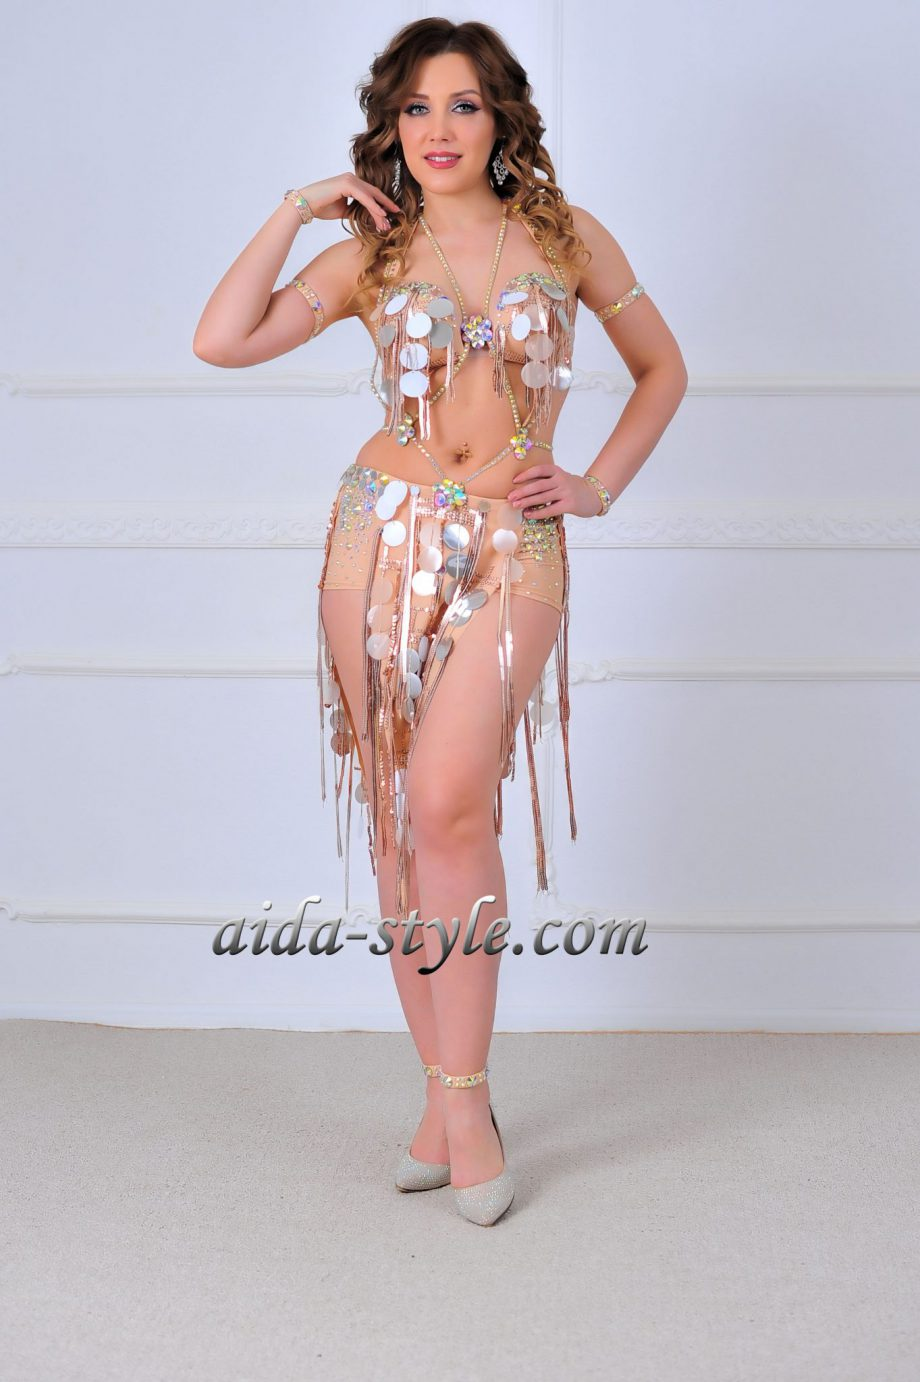 nude beautiful belly dancing outfits